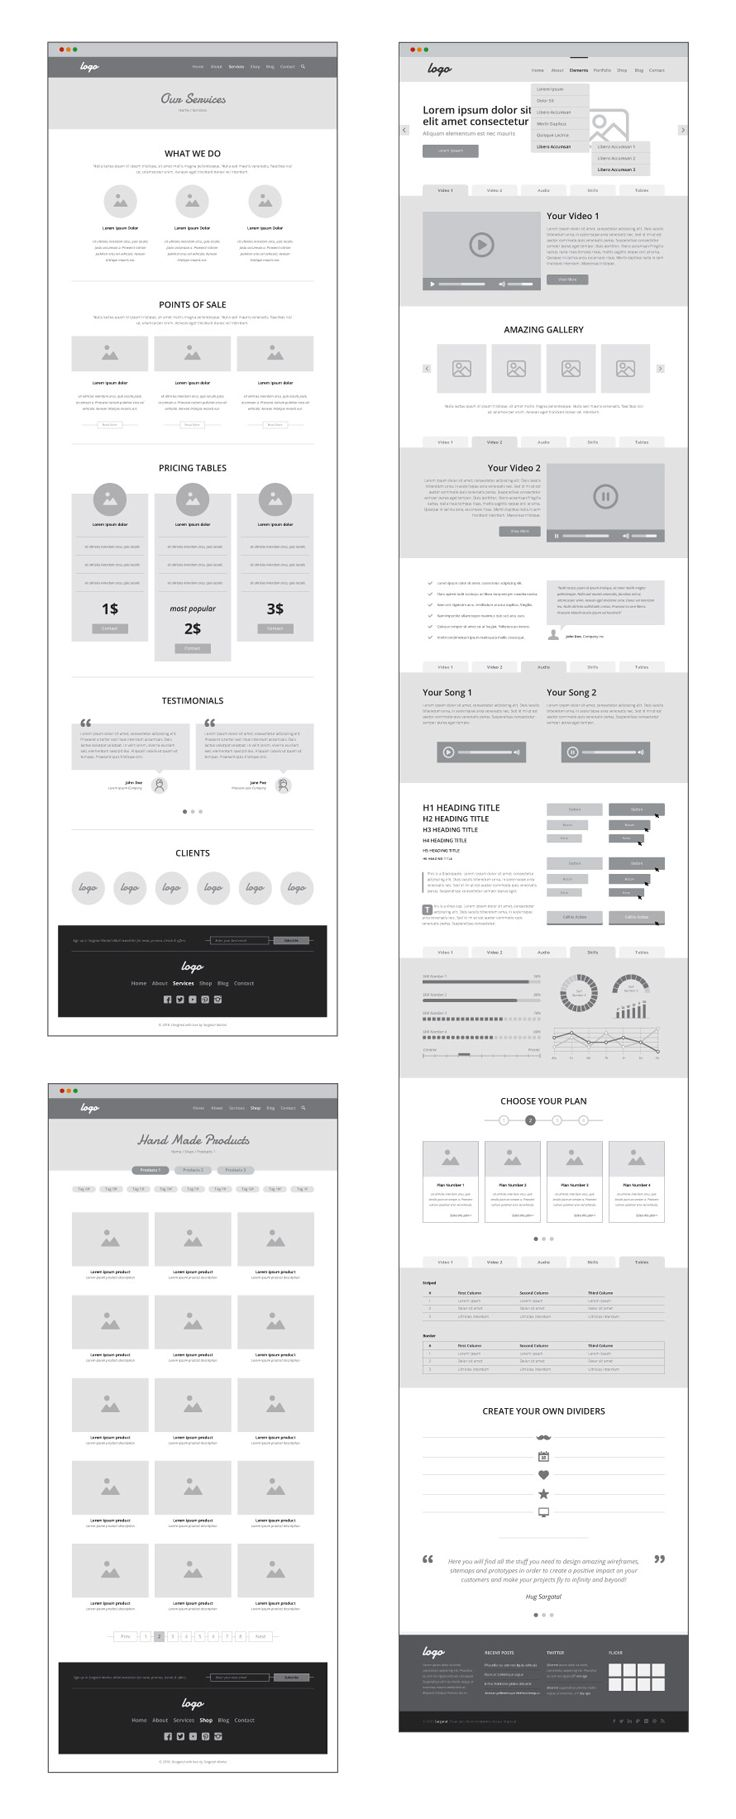 Sample of wireframes generated with UX Workflow - Wireframe and Sitemap Creator